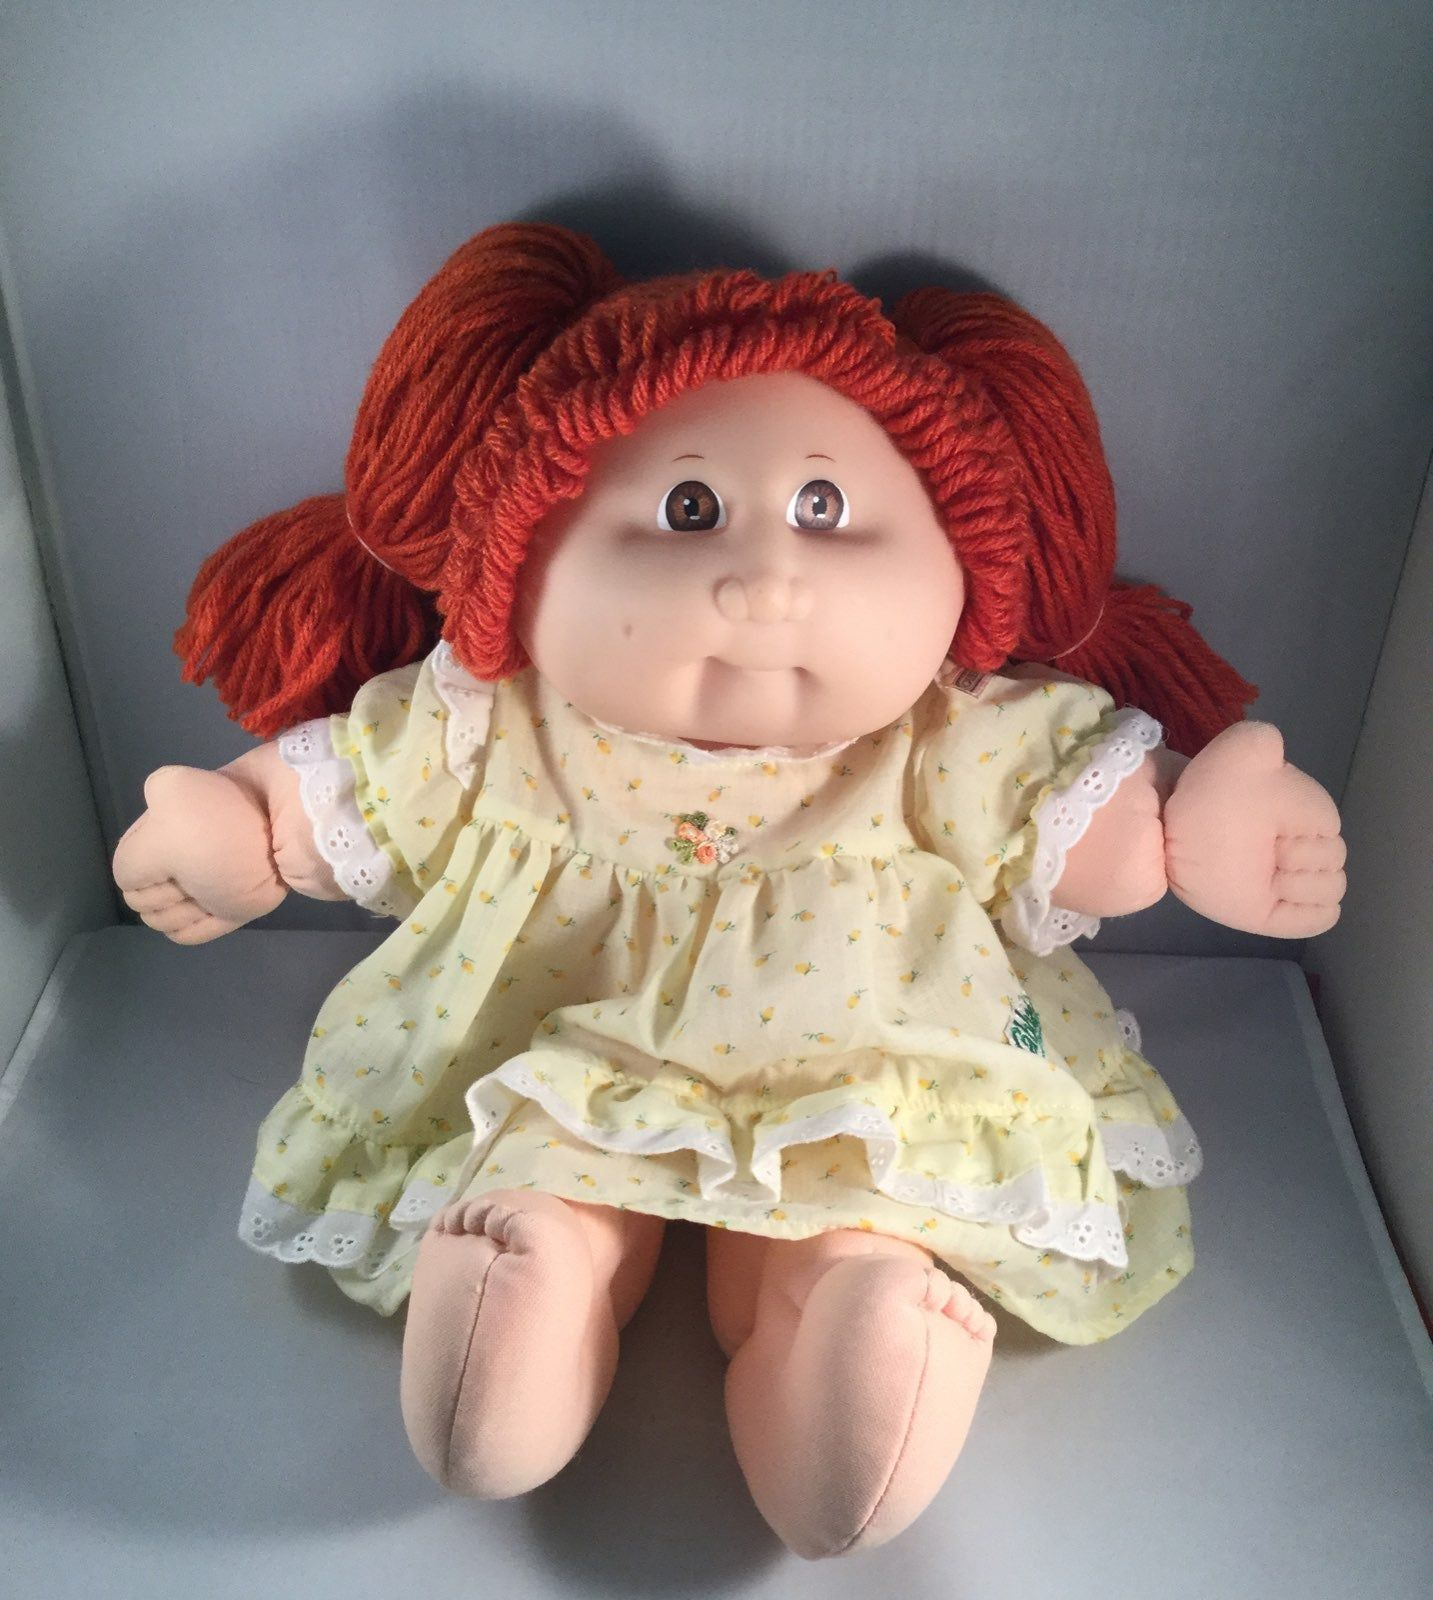 15th Anniversary Cabbage Patch Kid By Mattel Red Yarn Hair In 2 Ponytails Bown Eyes She S Clean No Stains Or Mar Cabbage Patch Kids Patch Kids Red Yarn